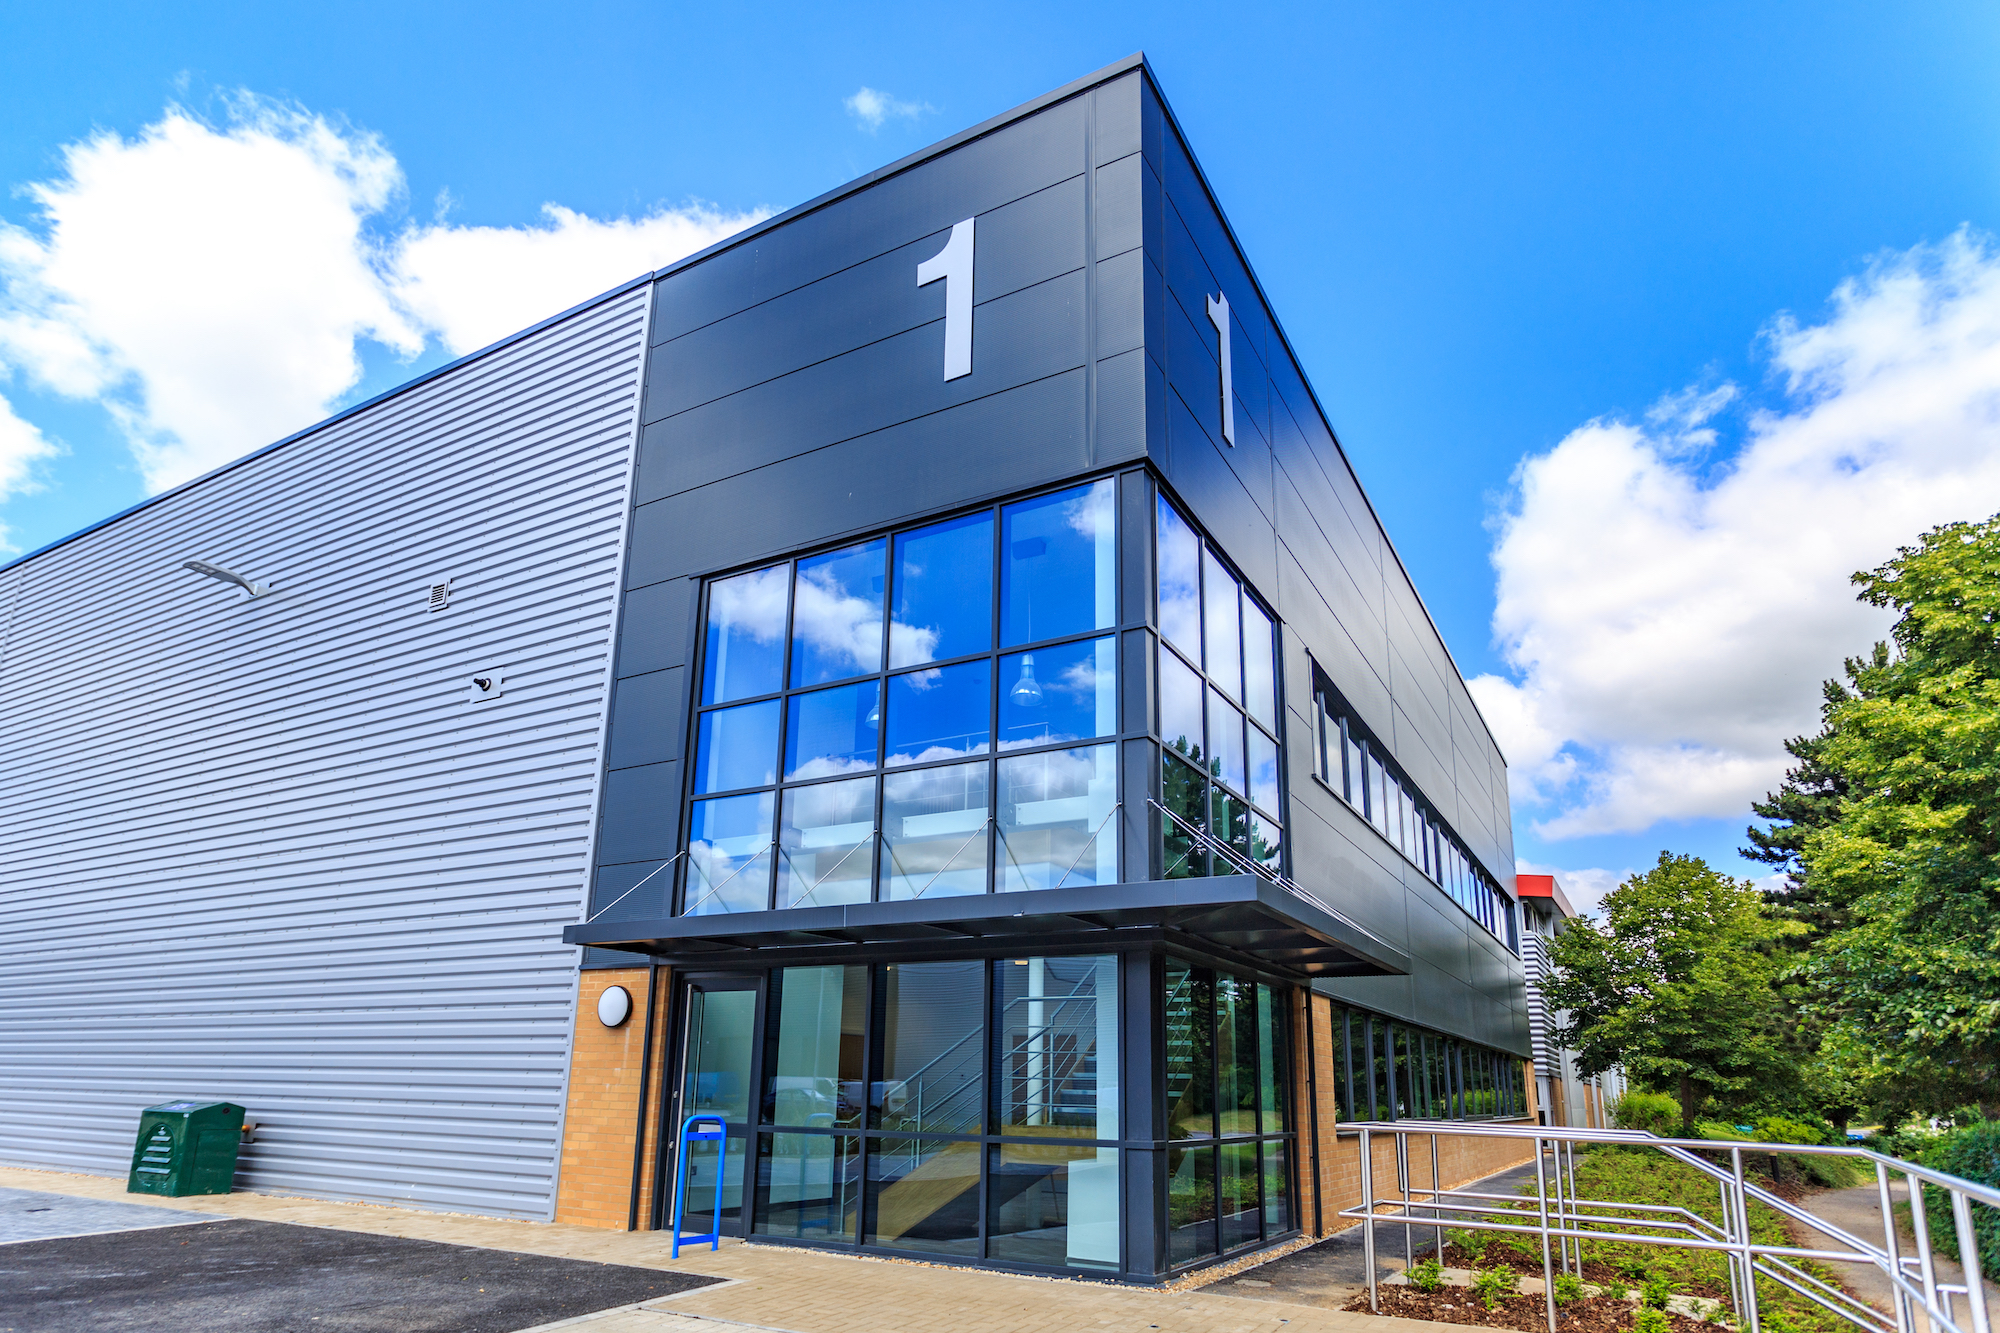 OpTek Systems Expands into Brand New Headquarters Space at Abingdon Business Park